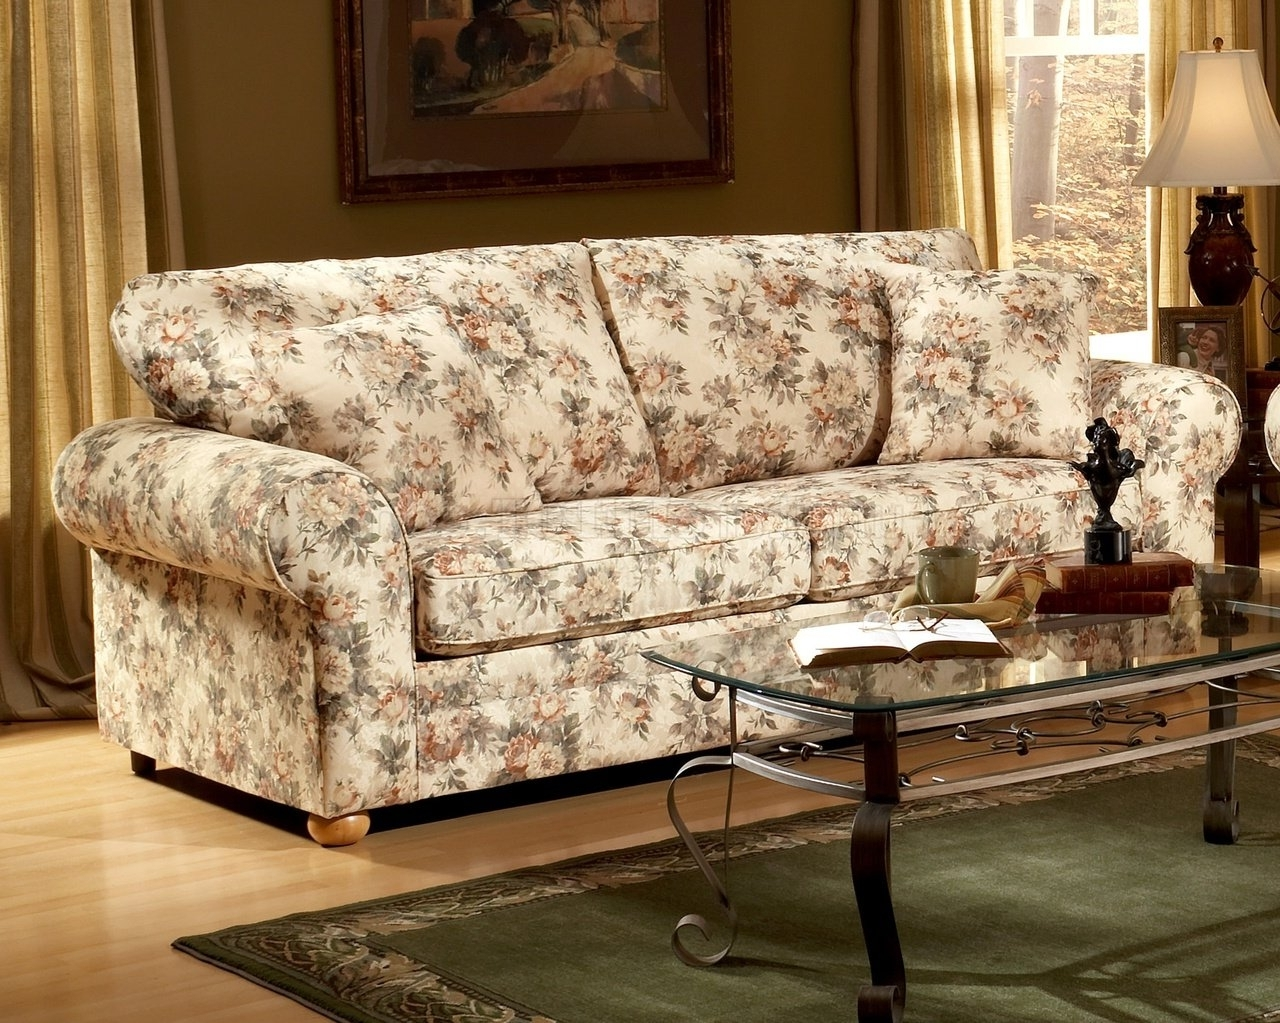 Pattern Fabric Traditional Sofa & Loveseat Set With Regard To Most Up To Date Traditional Sofas And Chairs (View 14 of 15)